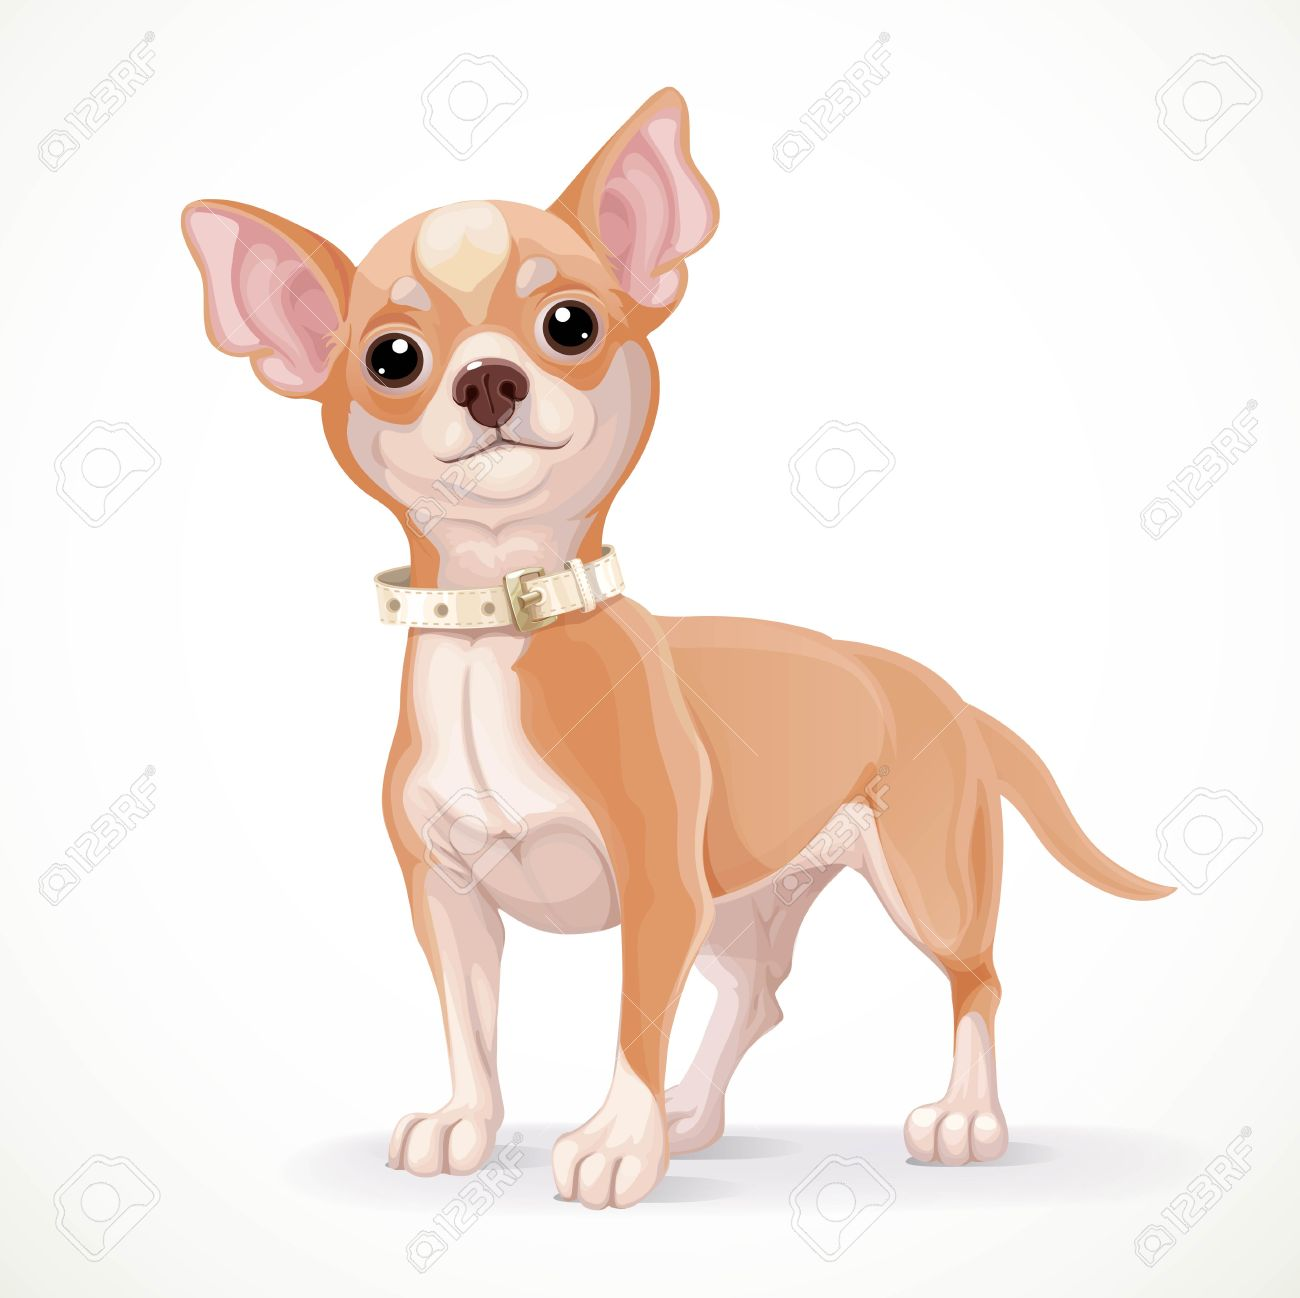 Cute little chihuahua dog vector illustration isolated on white...